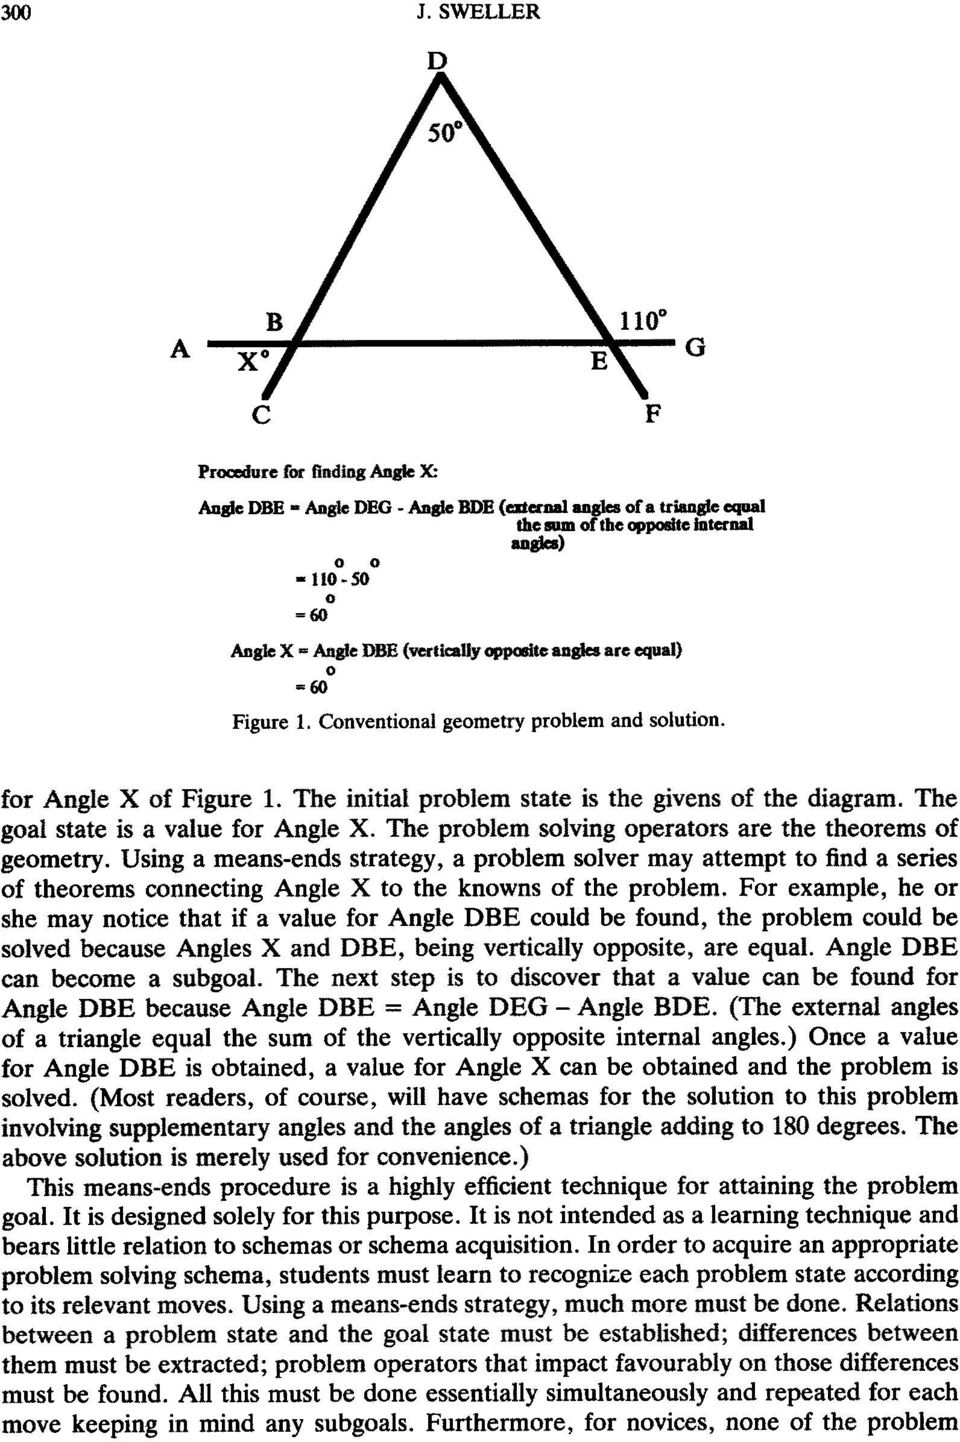 Conventional geometry problem and solution. for Angle X of Figure 1. The initial problem state is the givens of the diagram. The goal state is a value for Angle X.